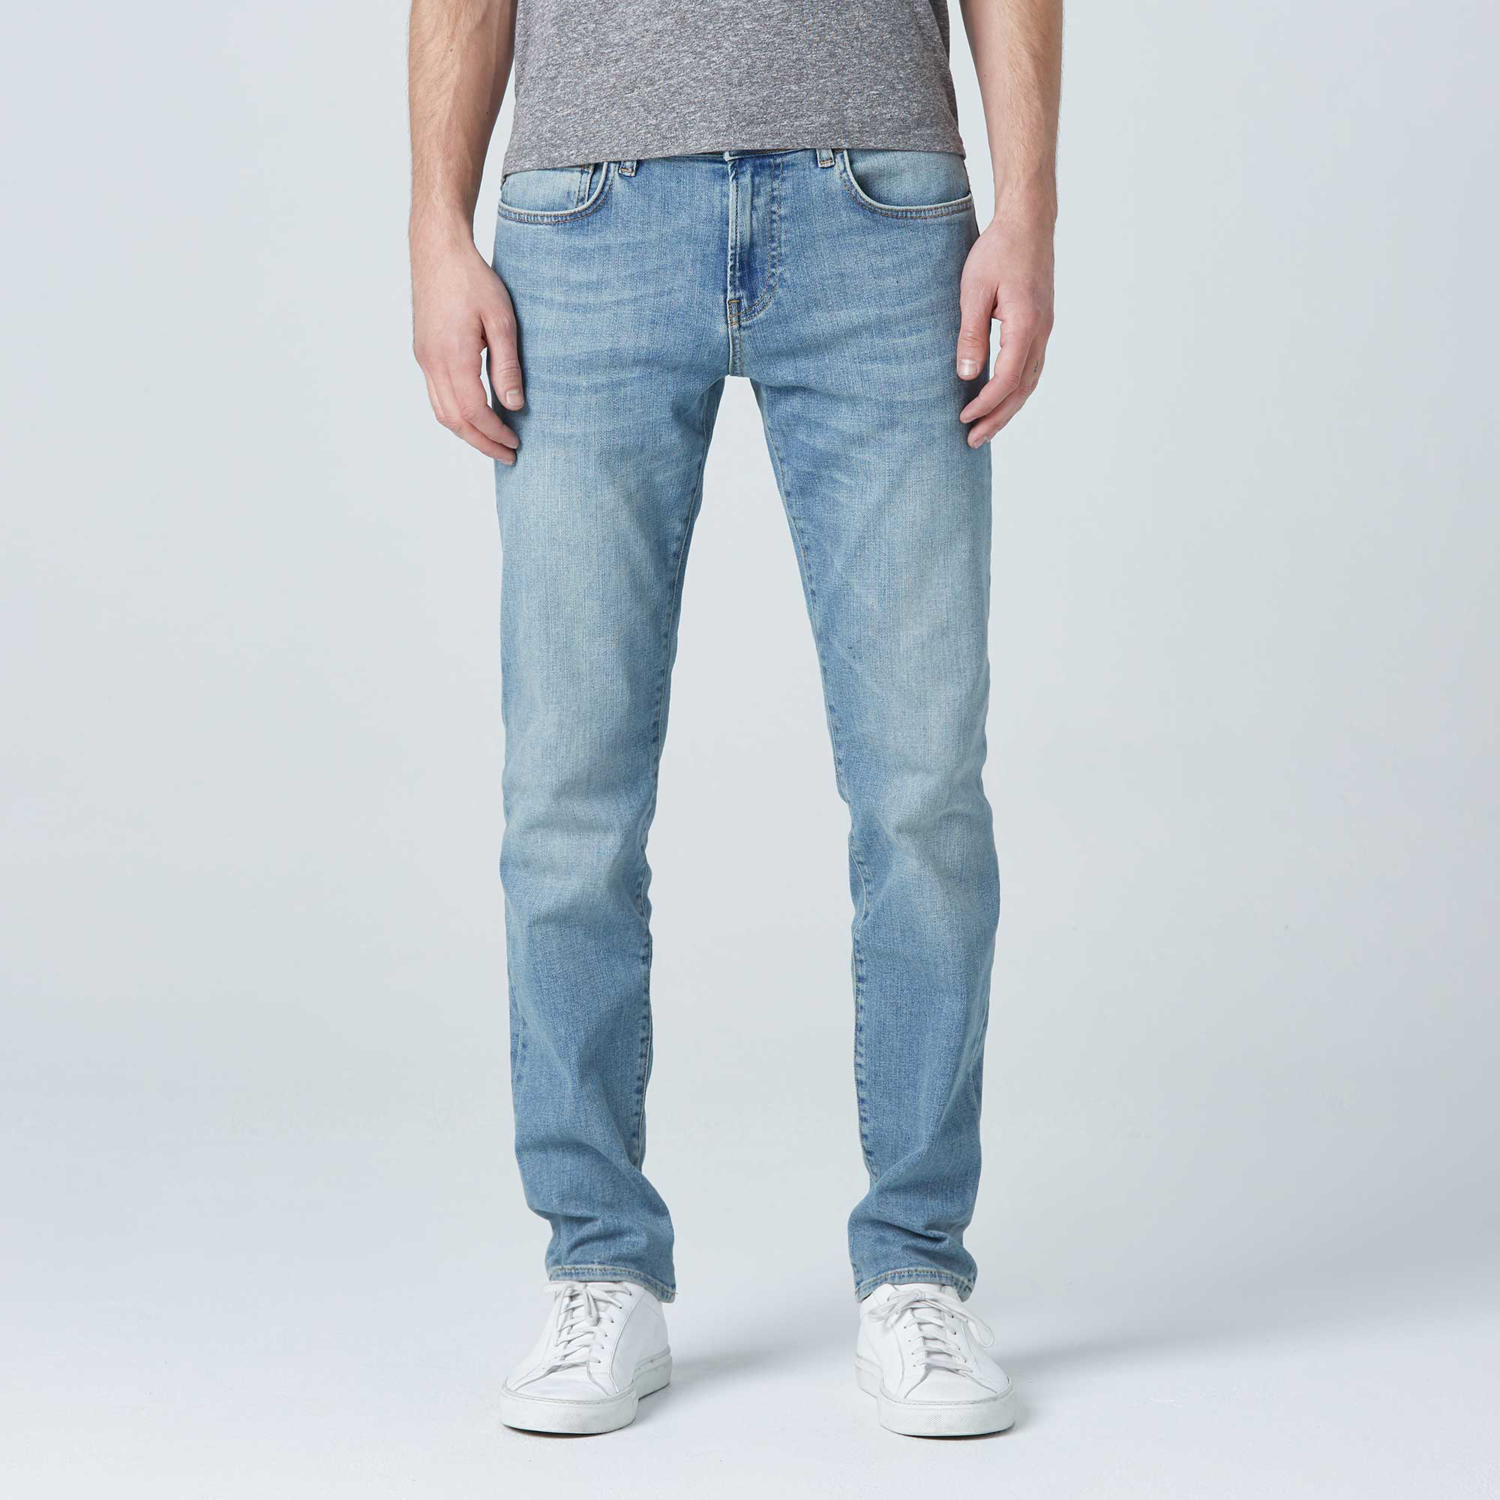 0a65aa74 Mens Skinny Slim Jeans In Light Wash $95 | DSTLD